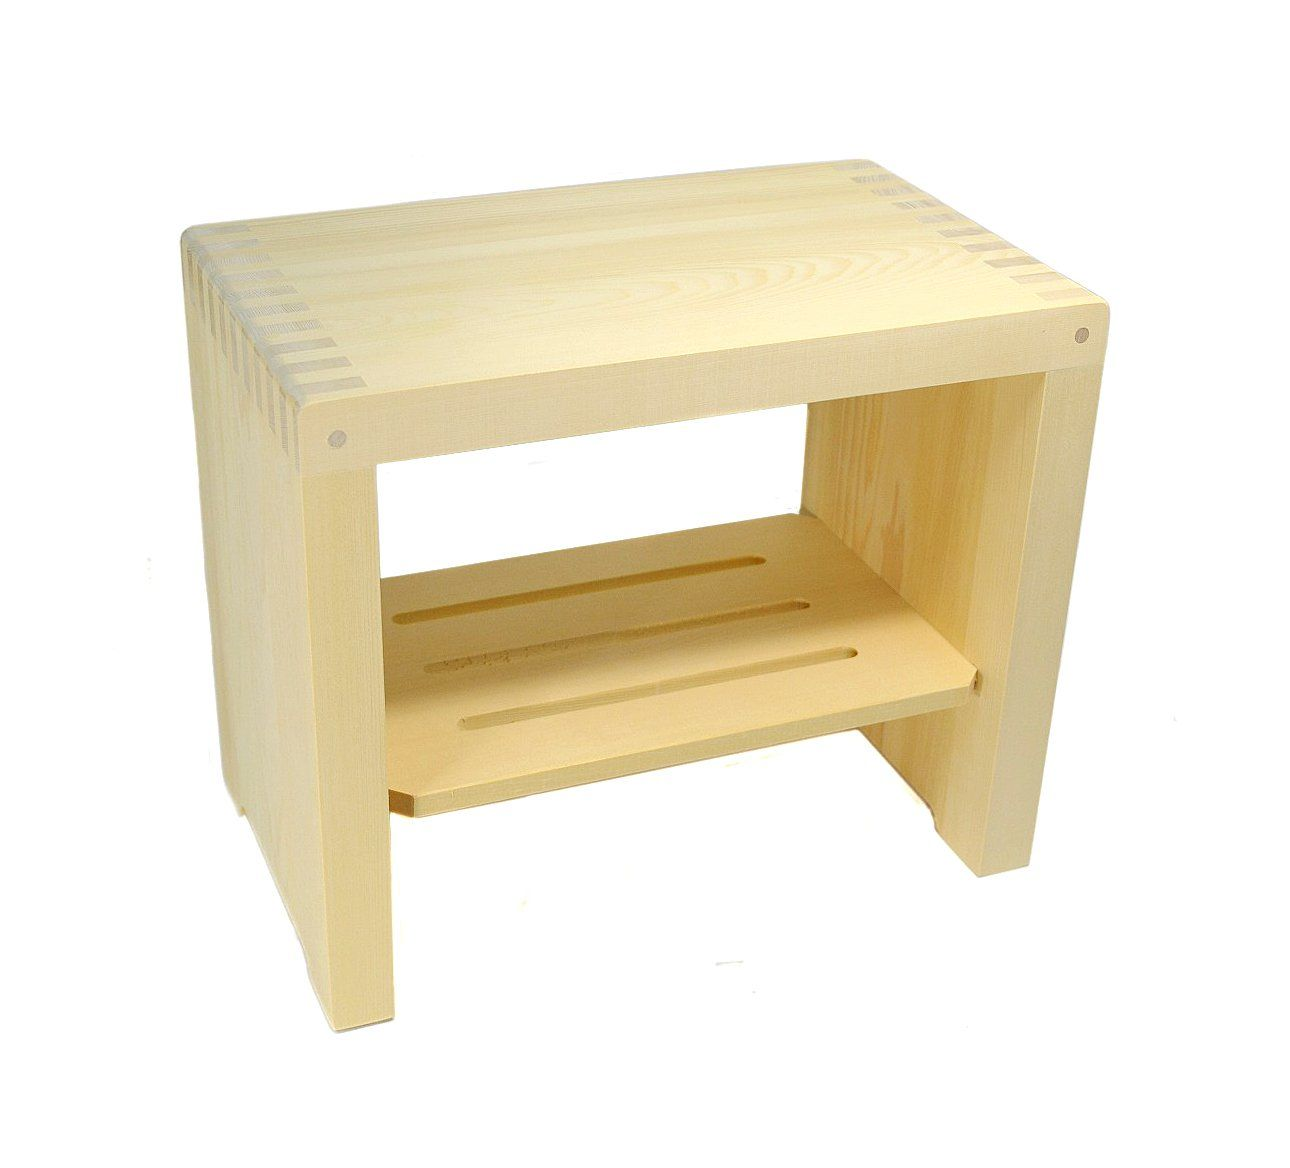 Superior Amazon.com   Japan Spa Hiba Wood Bath Stool U0026 Tosa Hinoki Large Size Bath Amazing Ideas